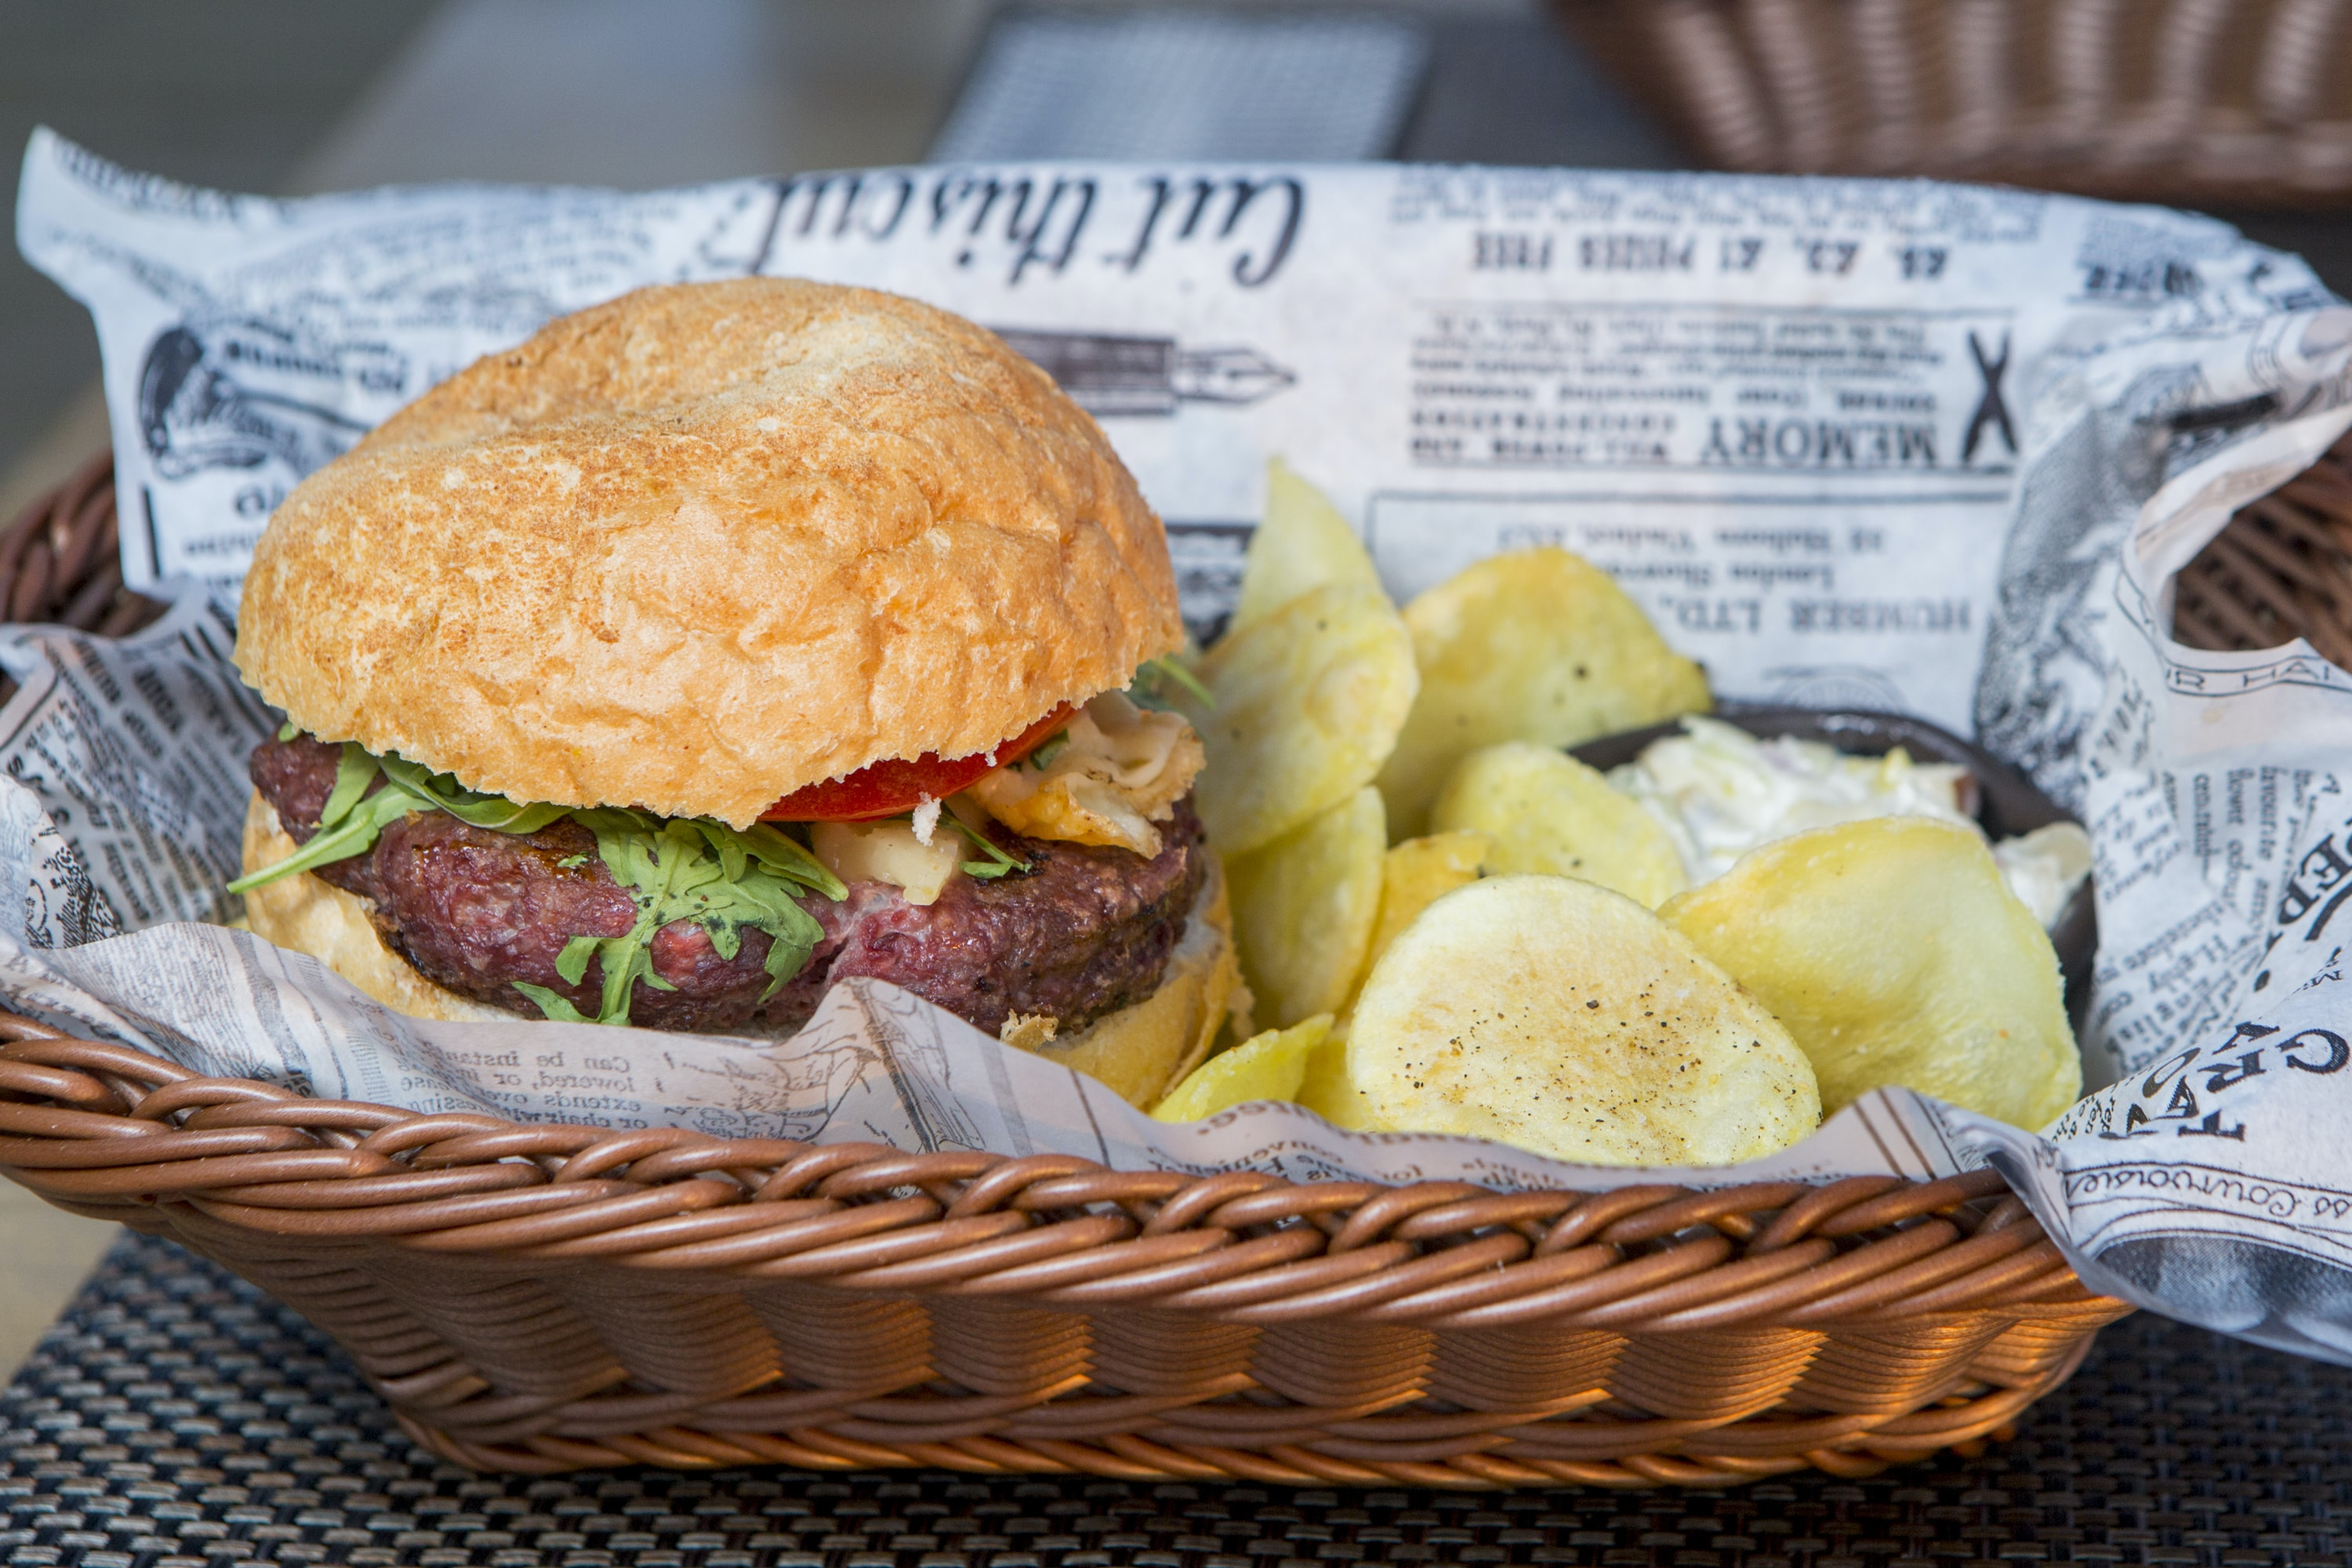 hamburger and chips in basket